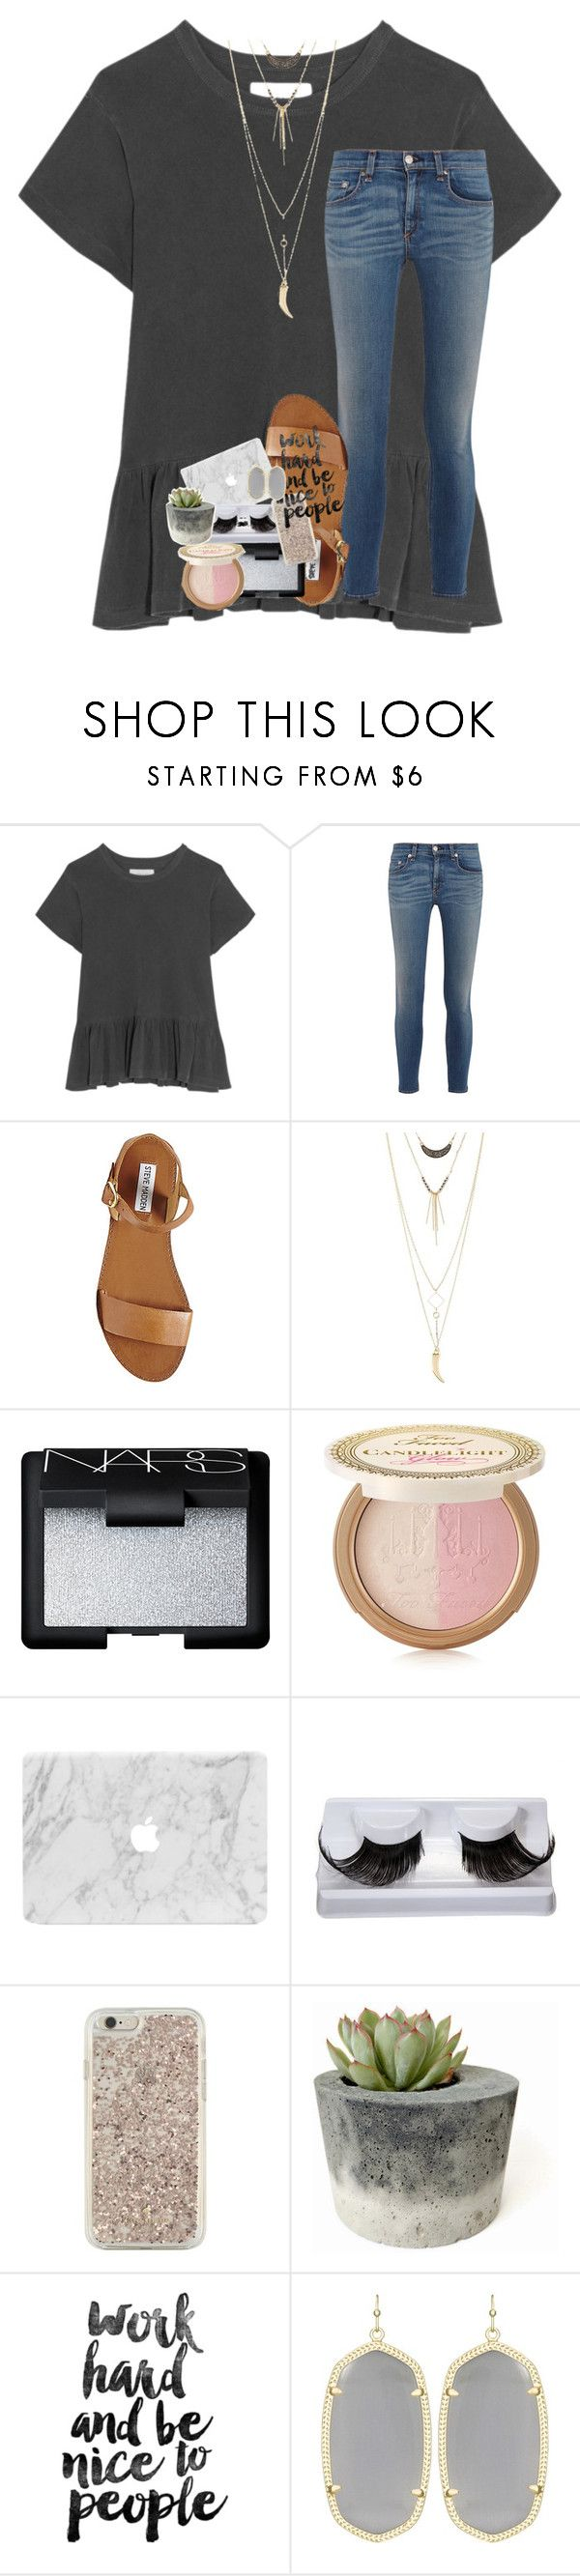 """push and pull like a magnet do"" by lindsaygreys ❤ liked on Polyvore featuring The Great, rag & bone, Steve Madden, Charlotte Russe, NARS Cosmetics, Too Faced Cosmetics, Kate Spade and Kendra Scott"